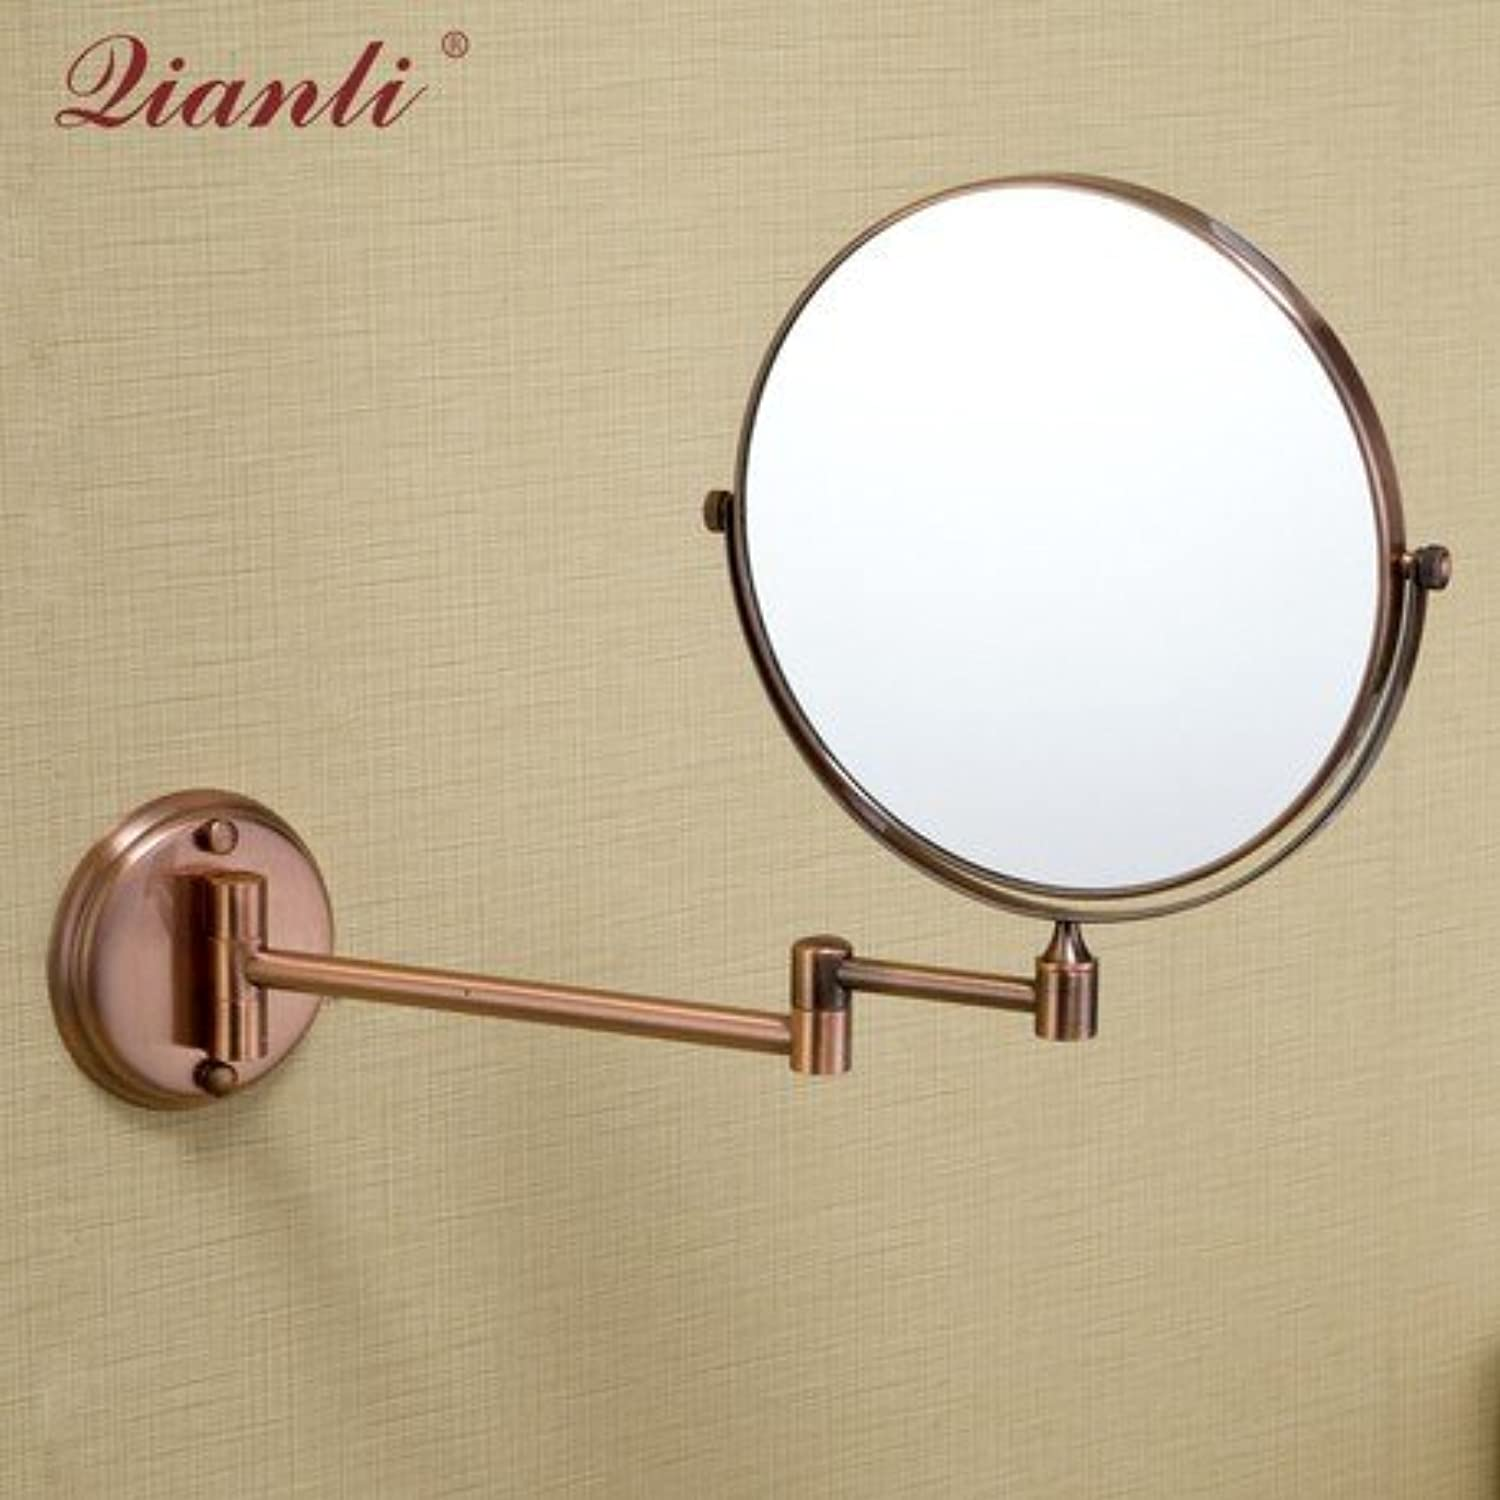 Copper mirror bathroom bathroom mirror double-sided Red Wall mounted makeup mirror 6